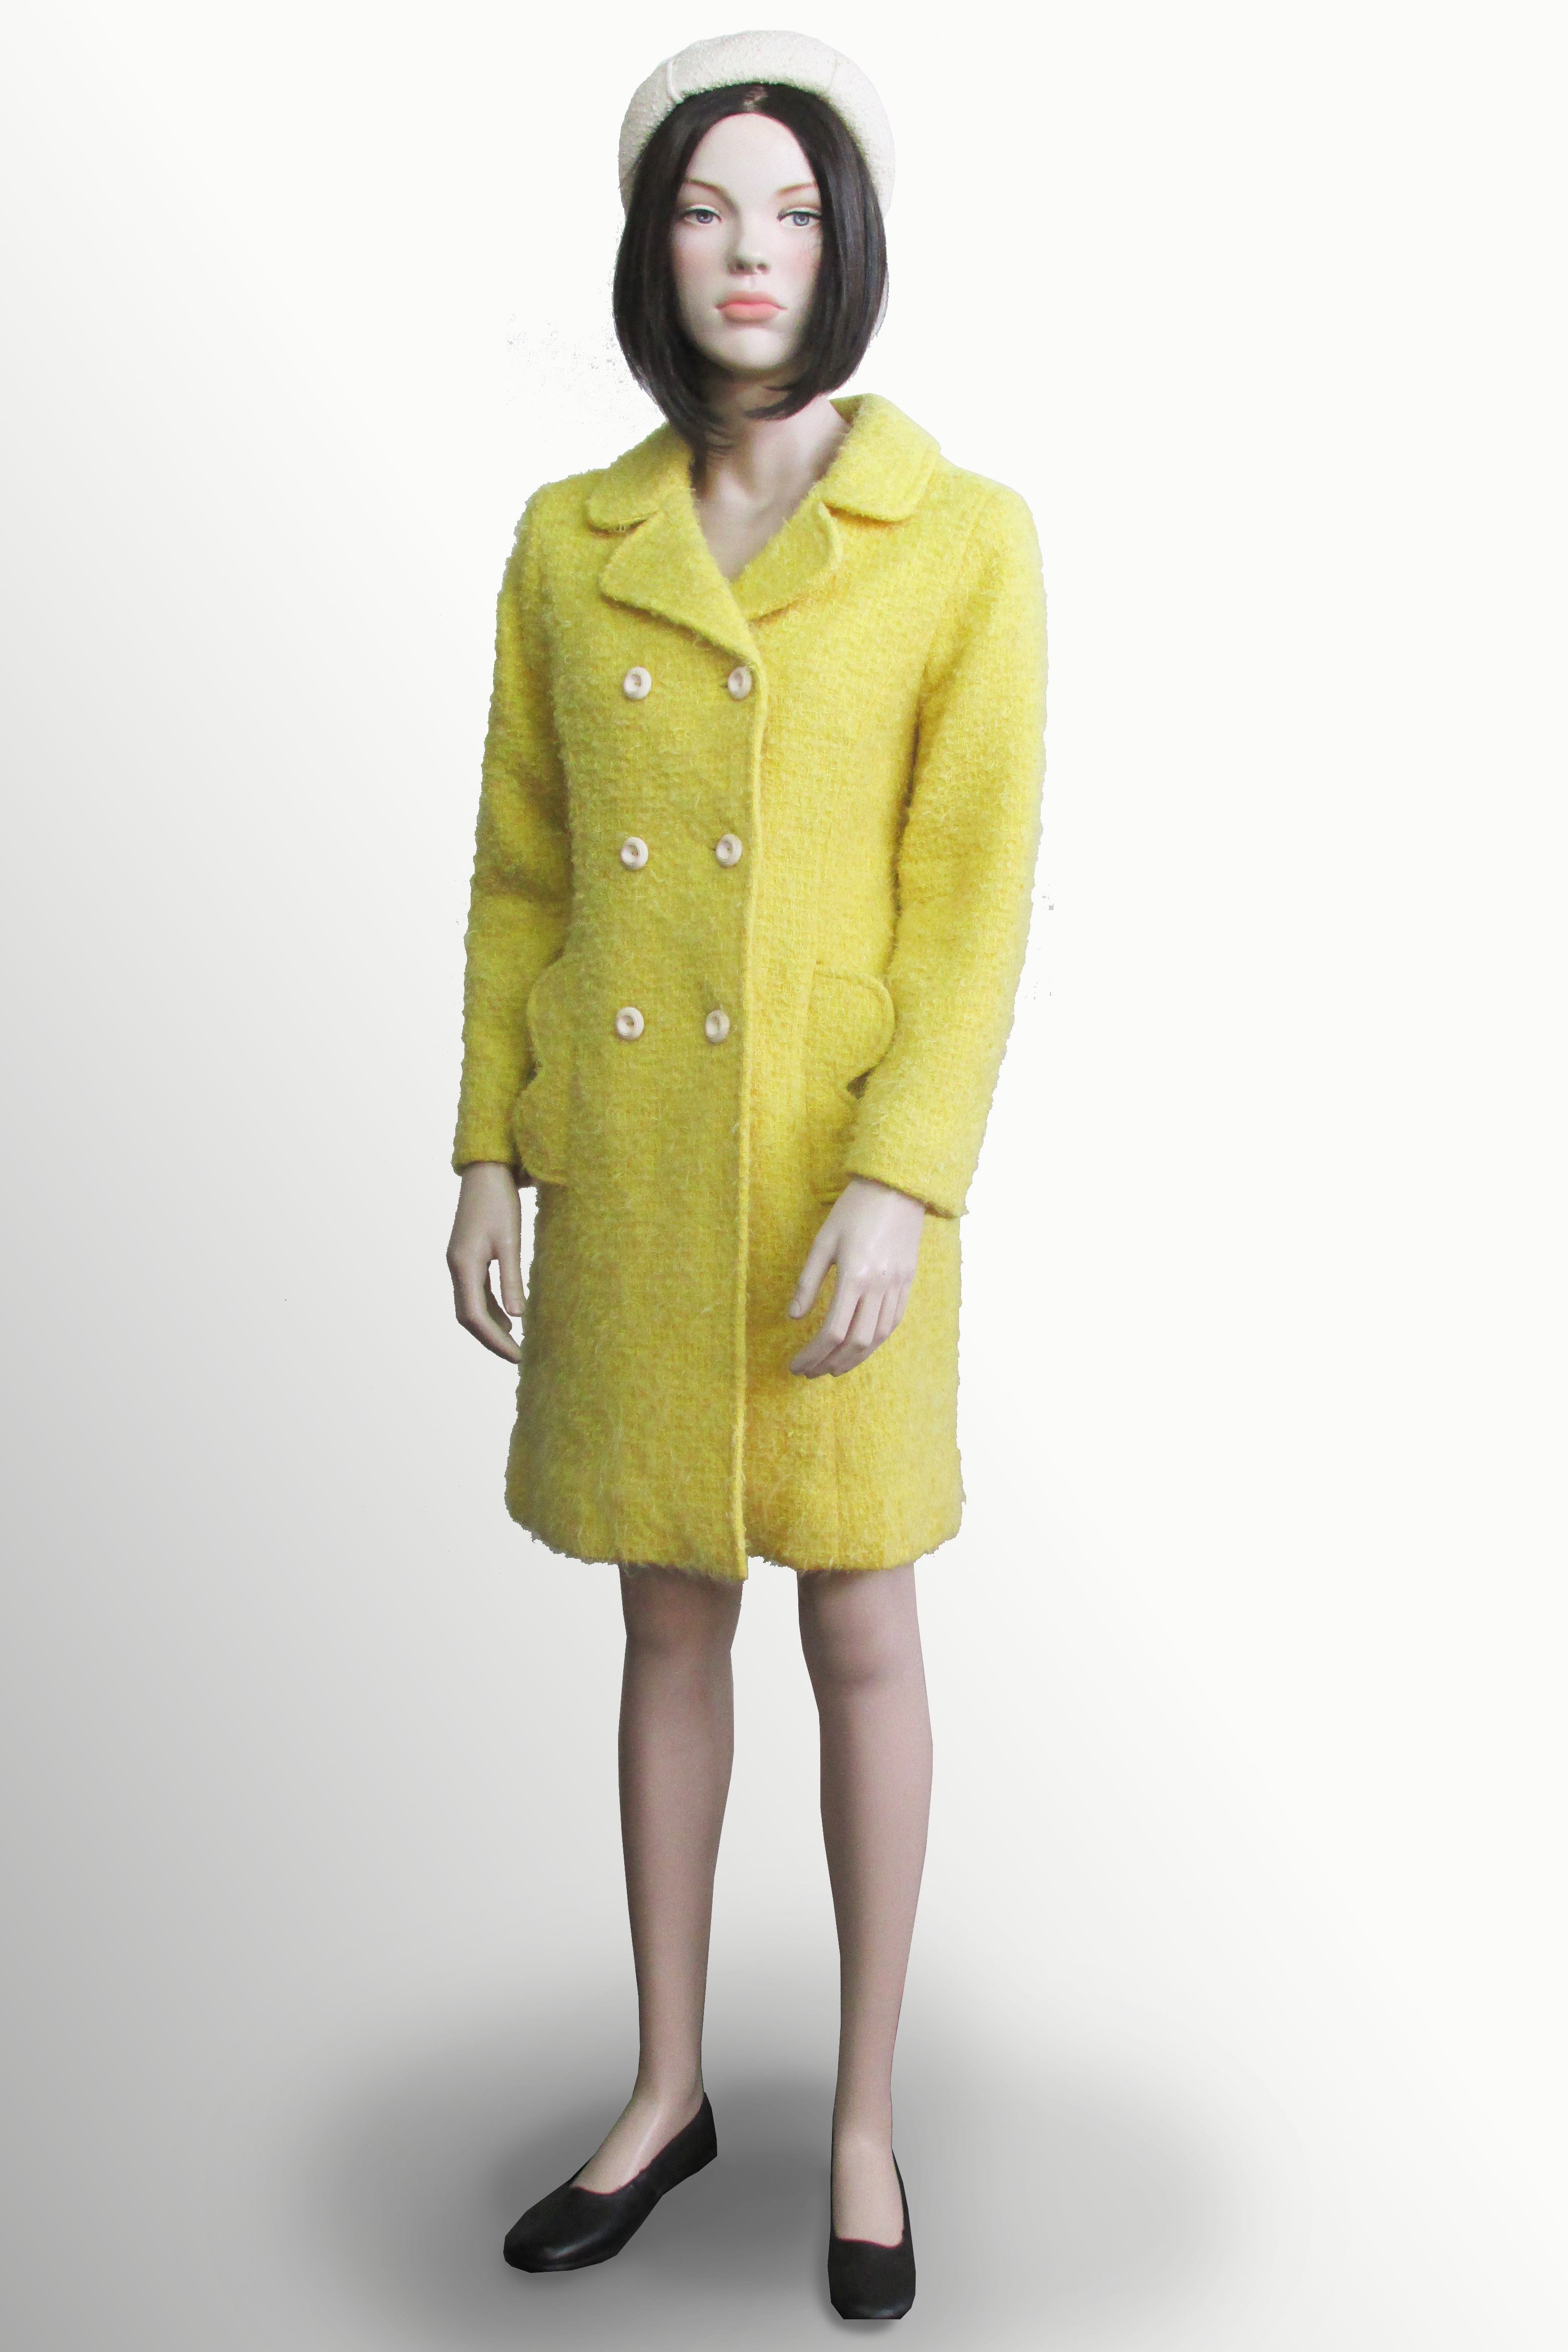 Coat Yellow Boucle 1960s/70s